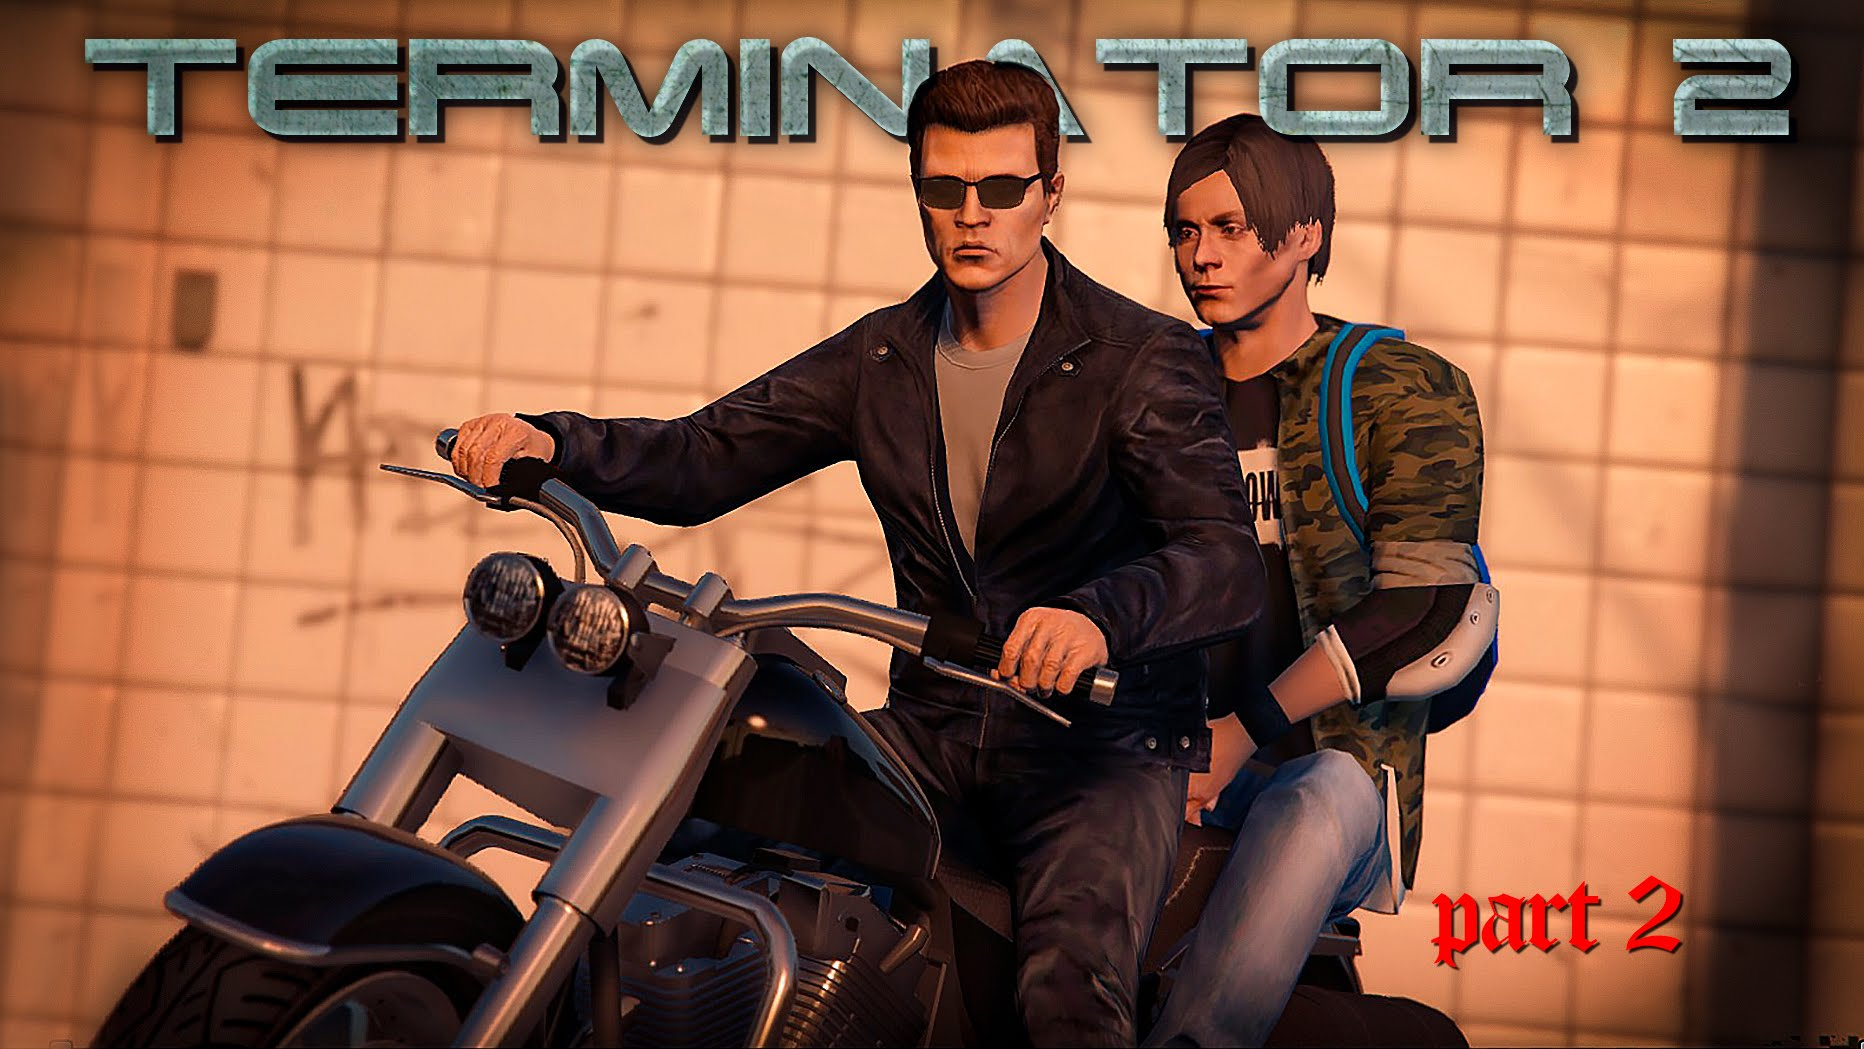 Photo of Munca lui James Cameron din Terminator 2 recreata in GTA V